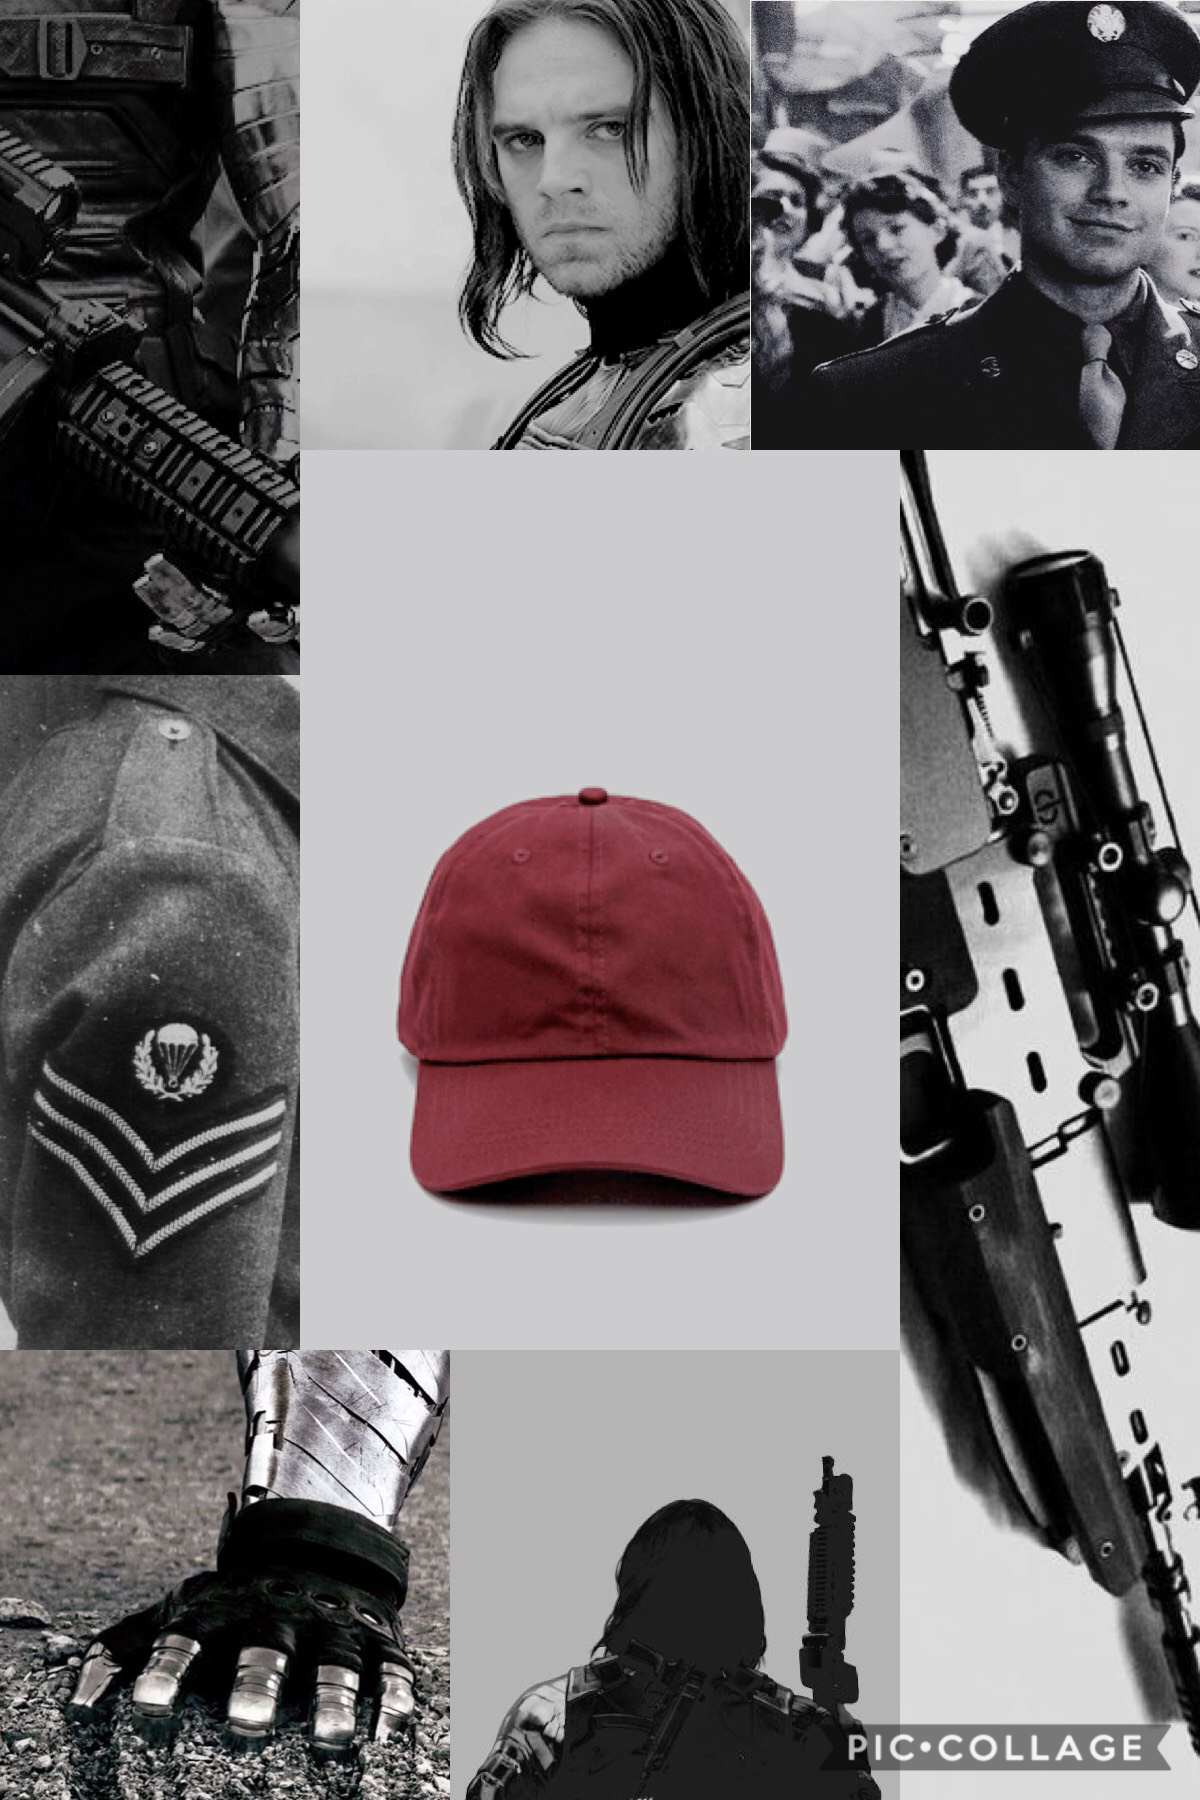 ❤️Tap❤️ Lol you thought y'all got rid of me. Sorry I haven't been active. Blame school. I'm going to be posting simple aesthetics for now, so here's Bucky! ❤️🖤